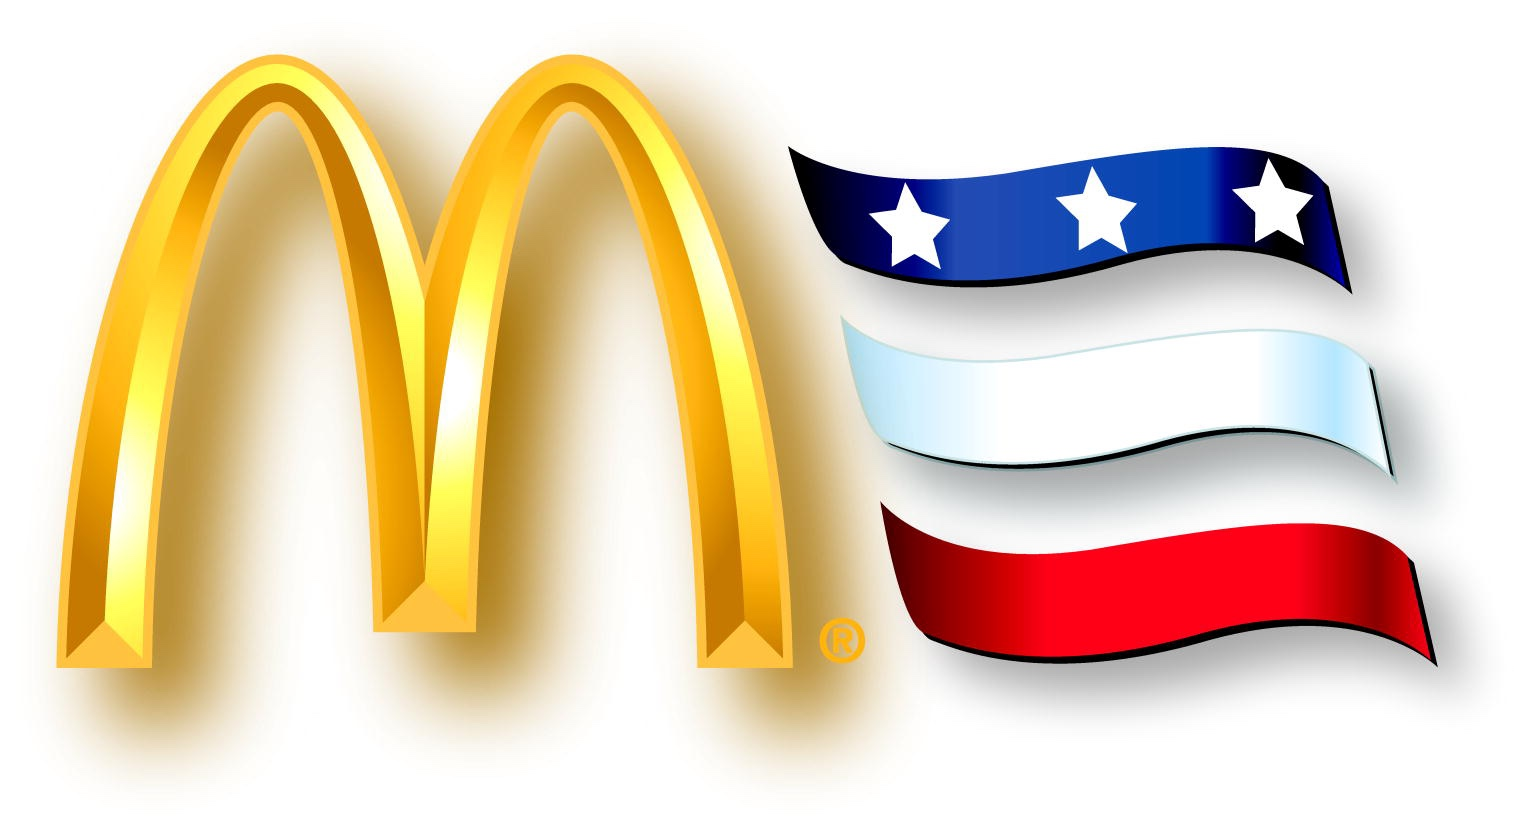 McDonald's Restaurant Franchisee- Committed to Being America's Best First Job